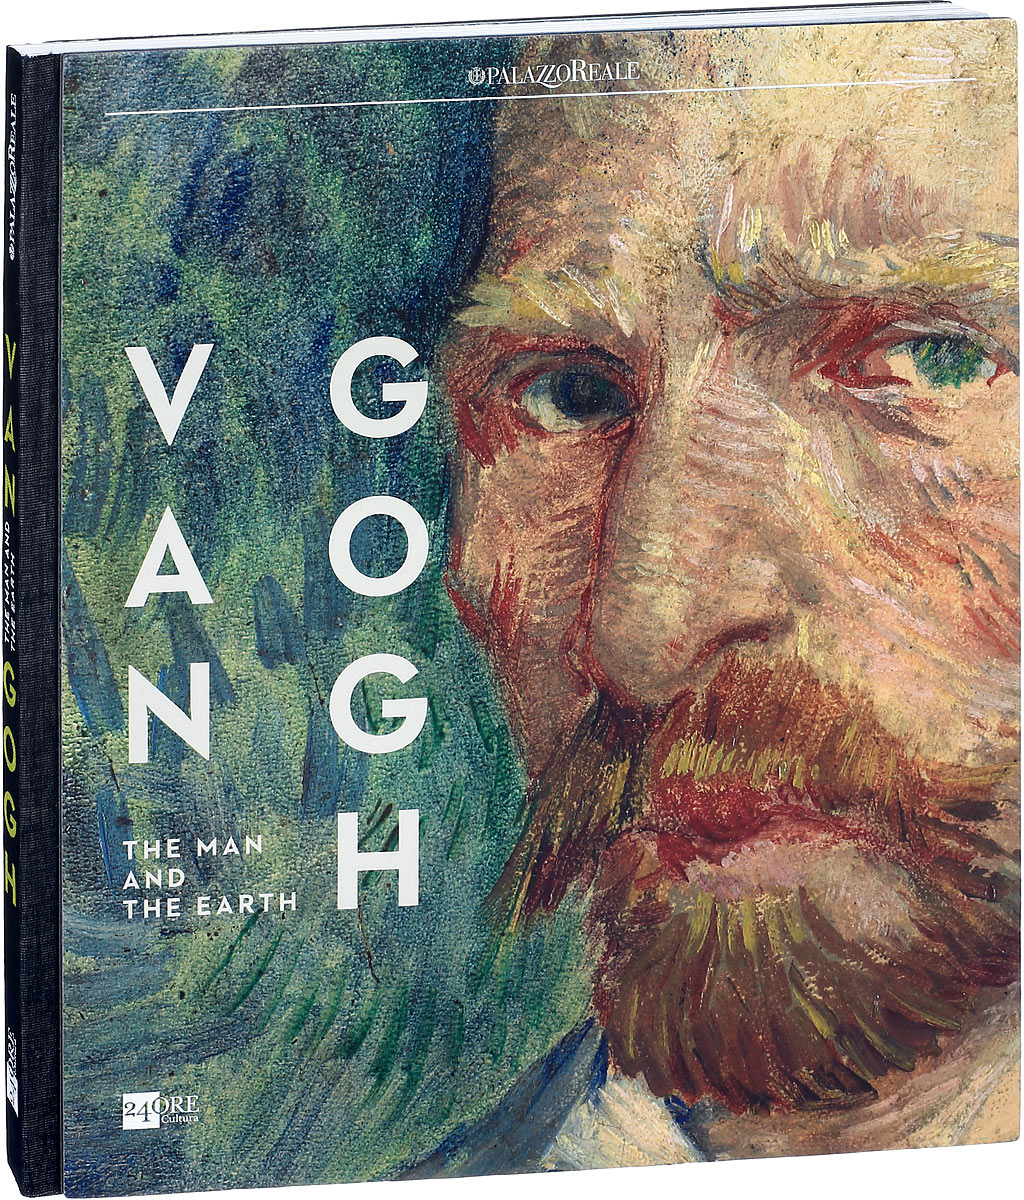 Van Gogh: The Man and the Earth the silmarillion